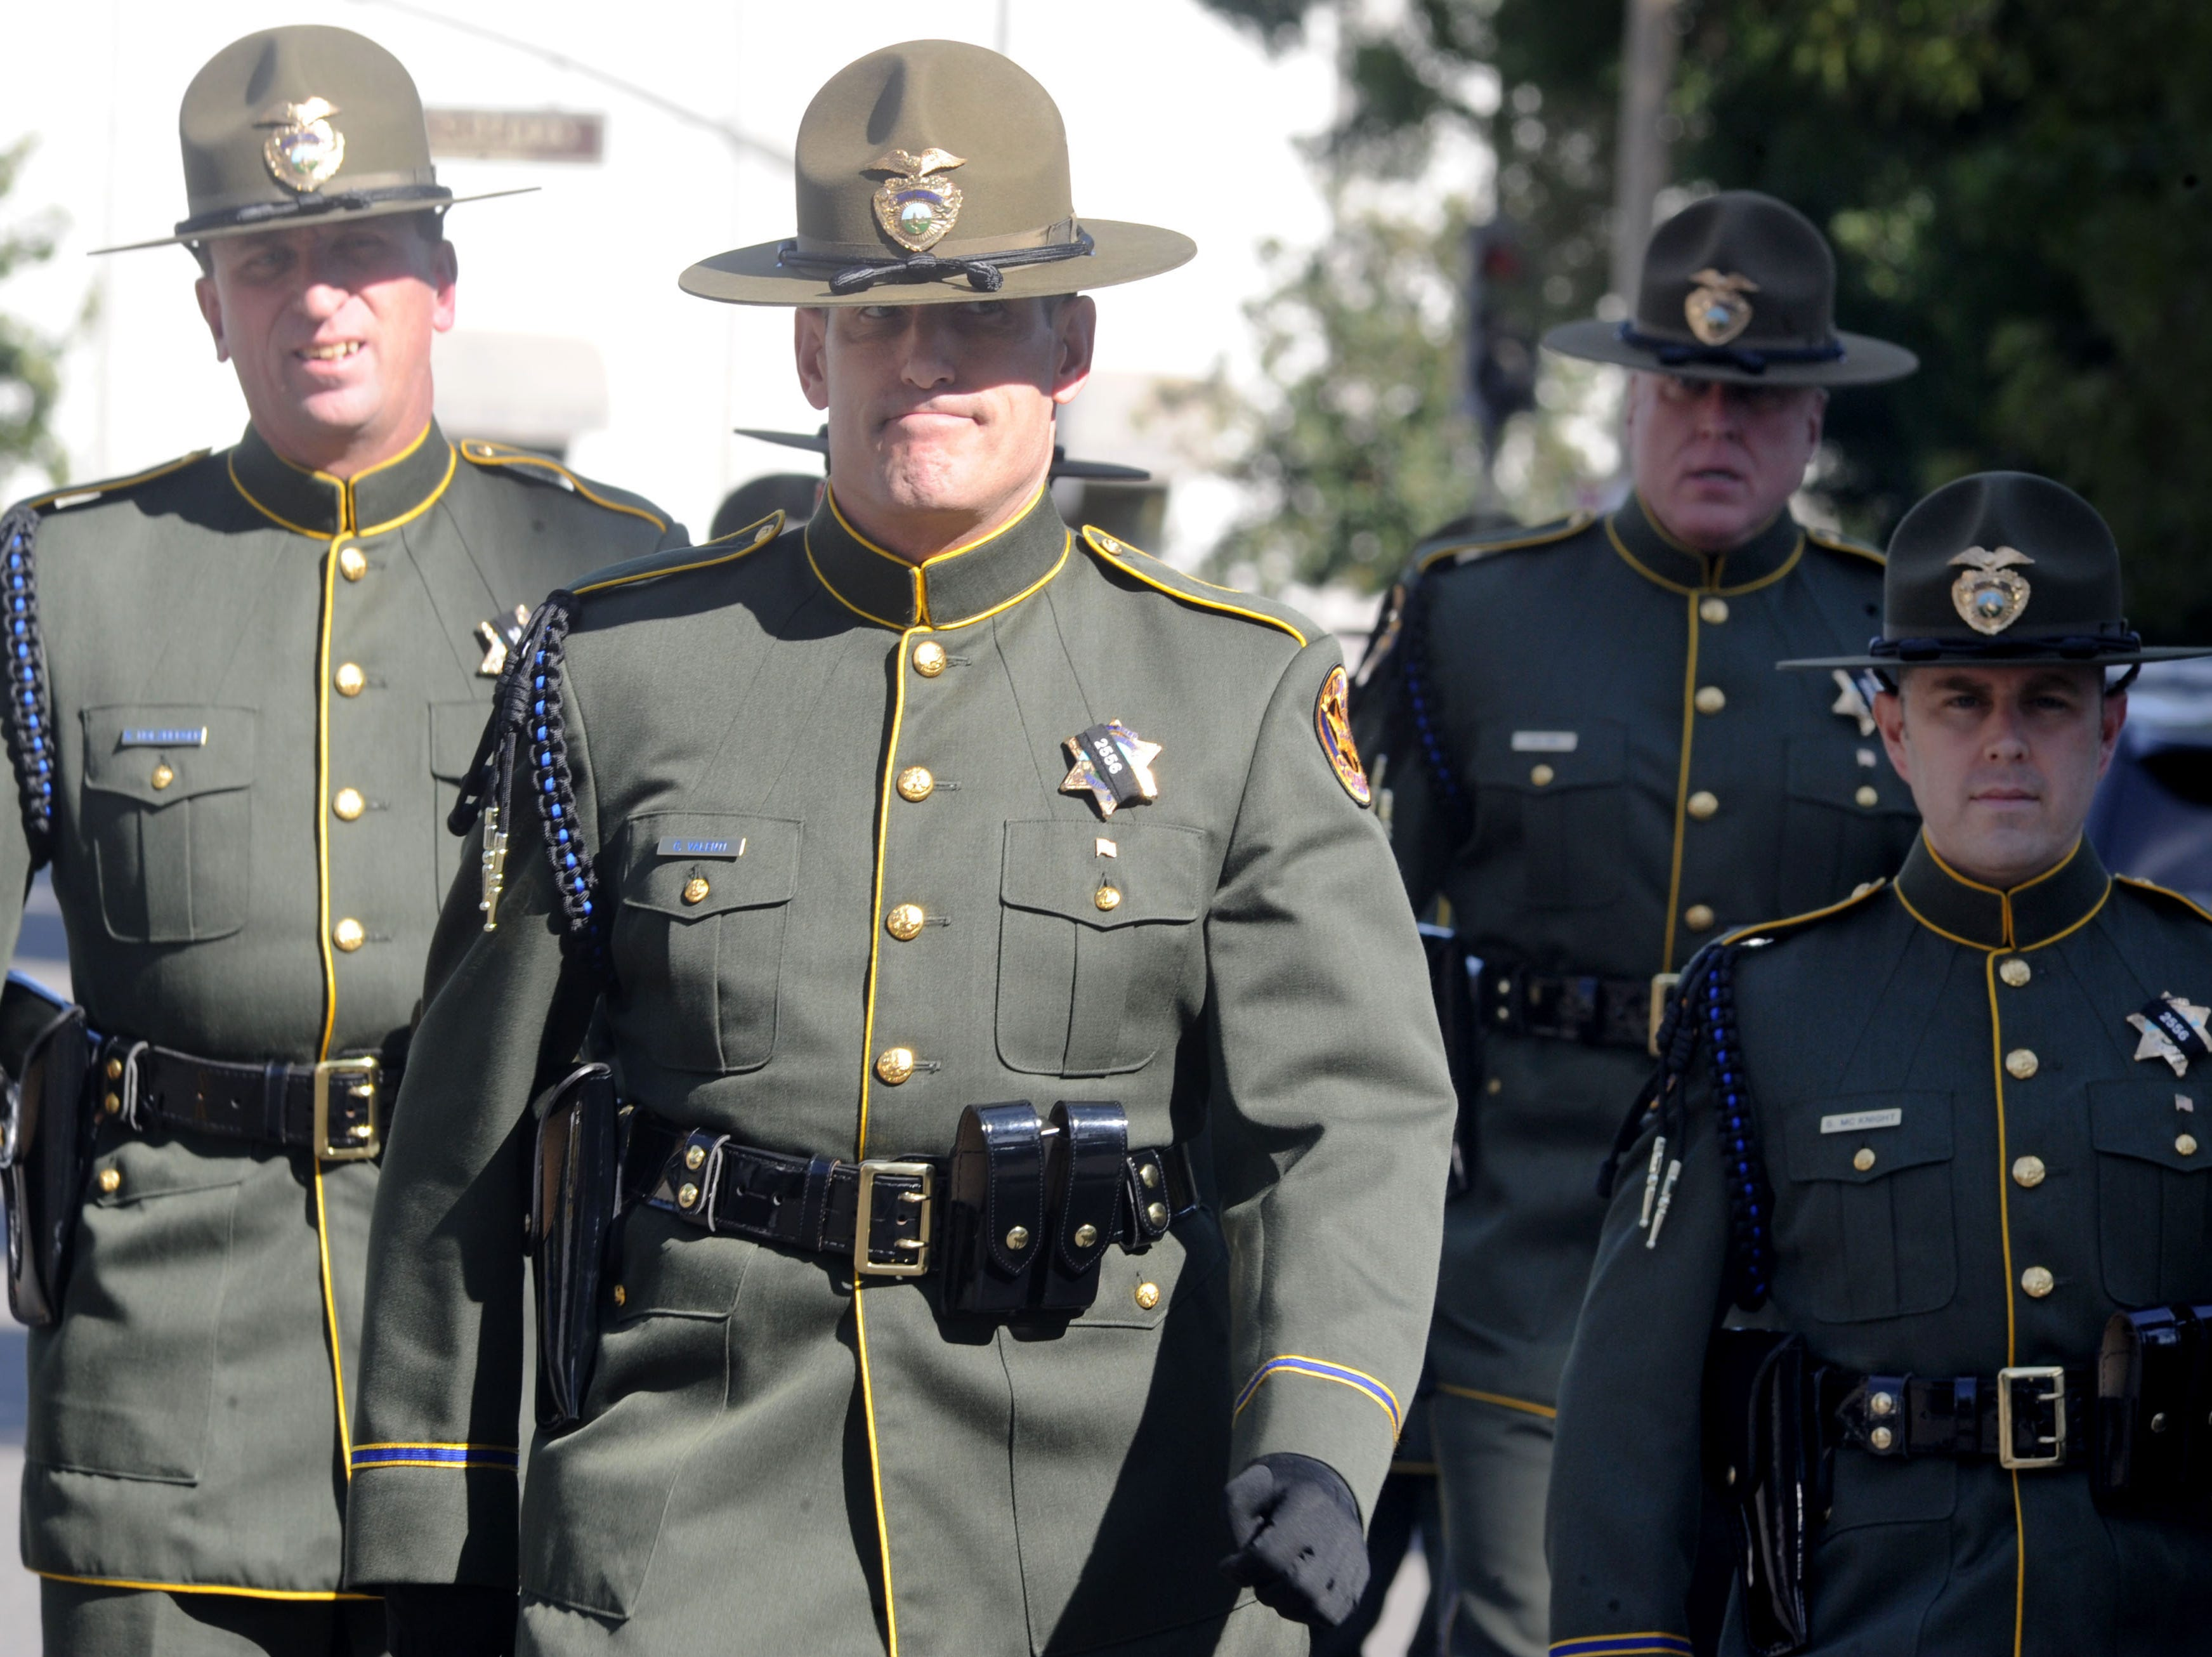 Law enforcement personnel walk into Calvary Community Church in Westlake Village Thursday to honor Ventura County Sheriff's Office Sgt. Ron Helus.